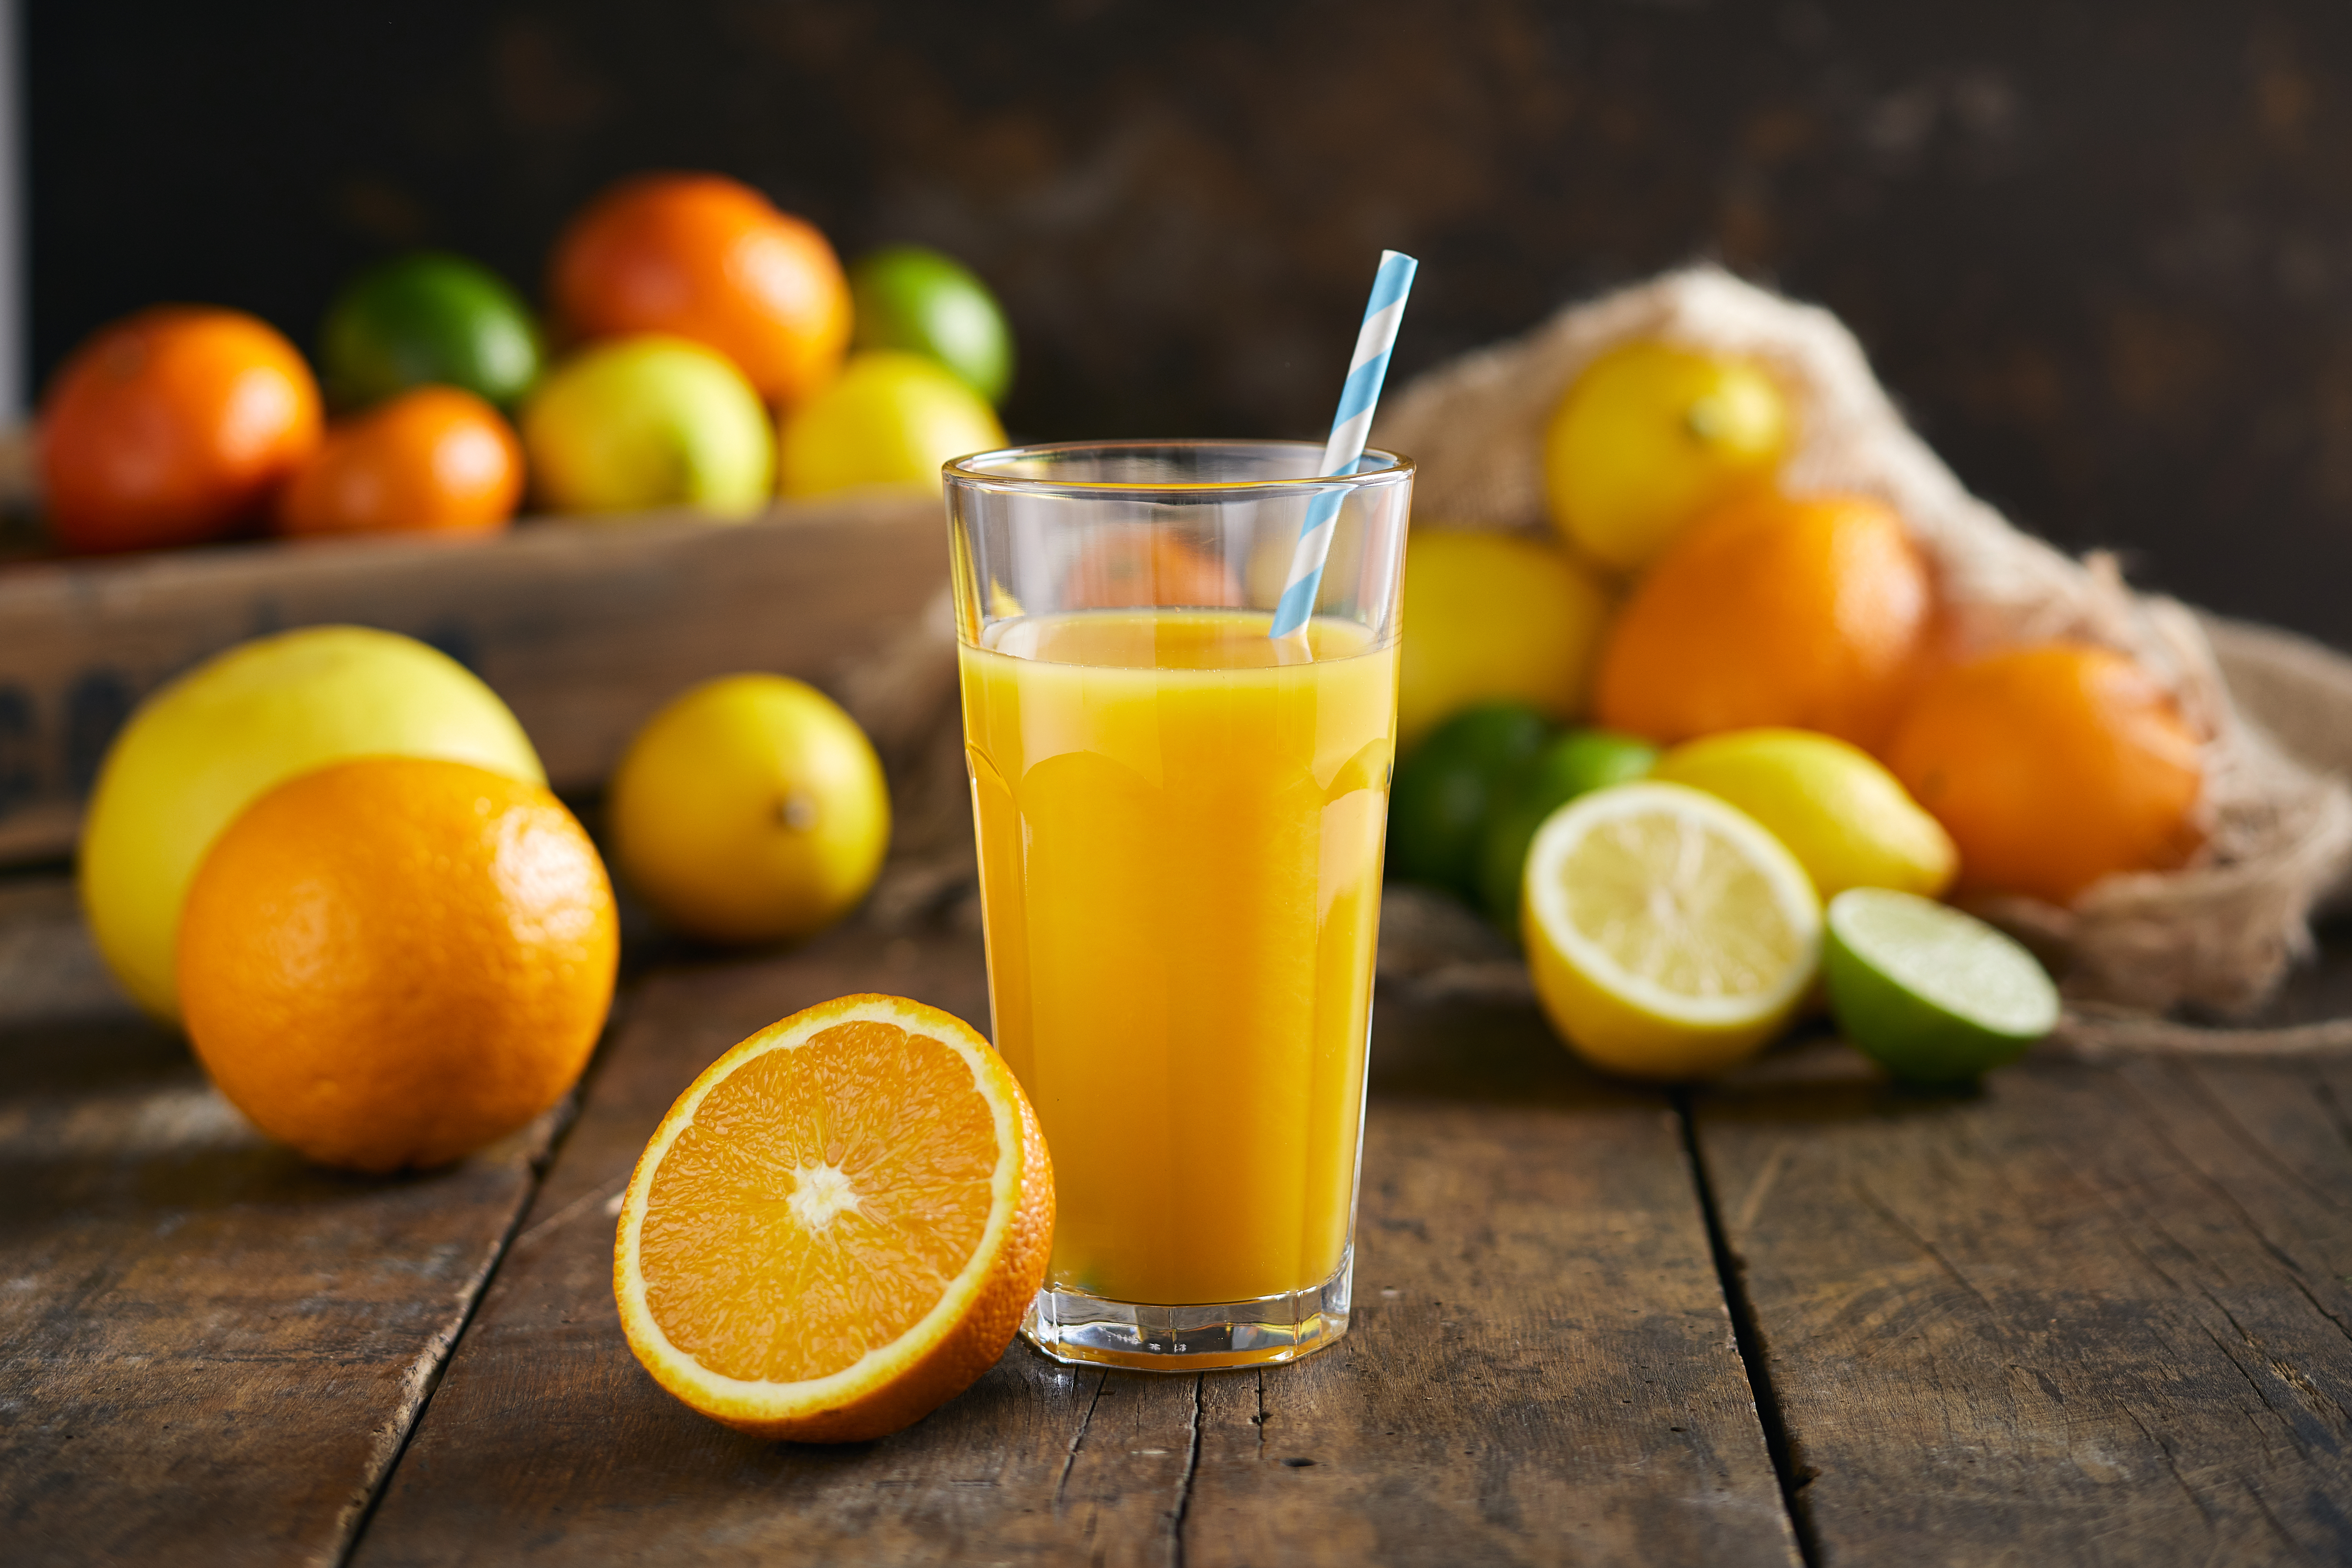 Glass full of orange juice with a paper straw on a dark wooden background. Halved orange is infront of a glass and mixed citruses are in the background.